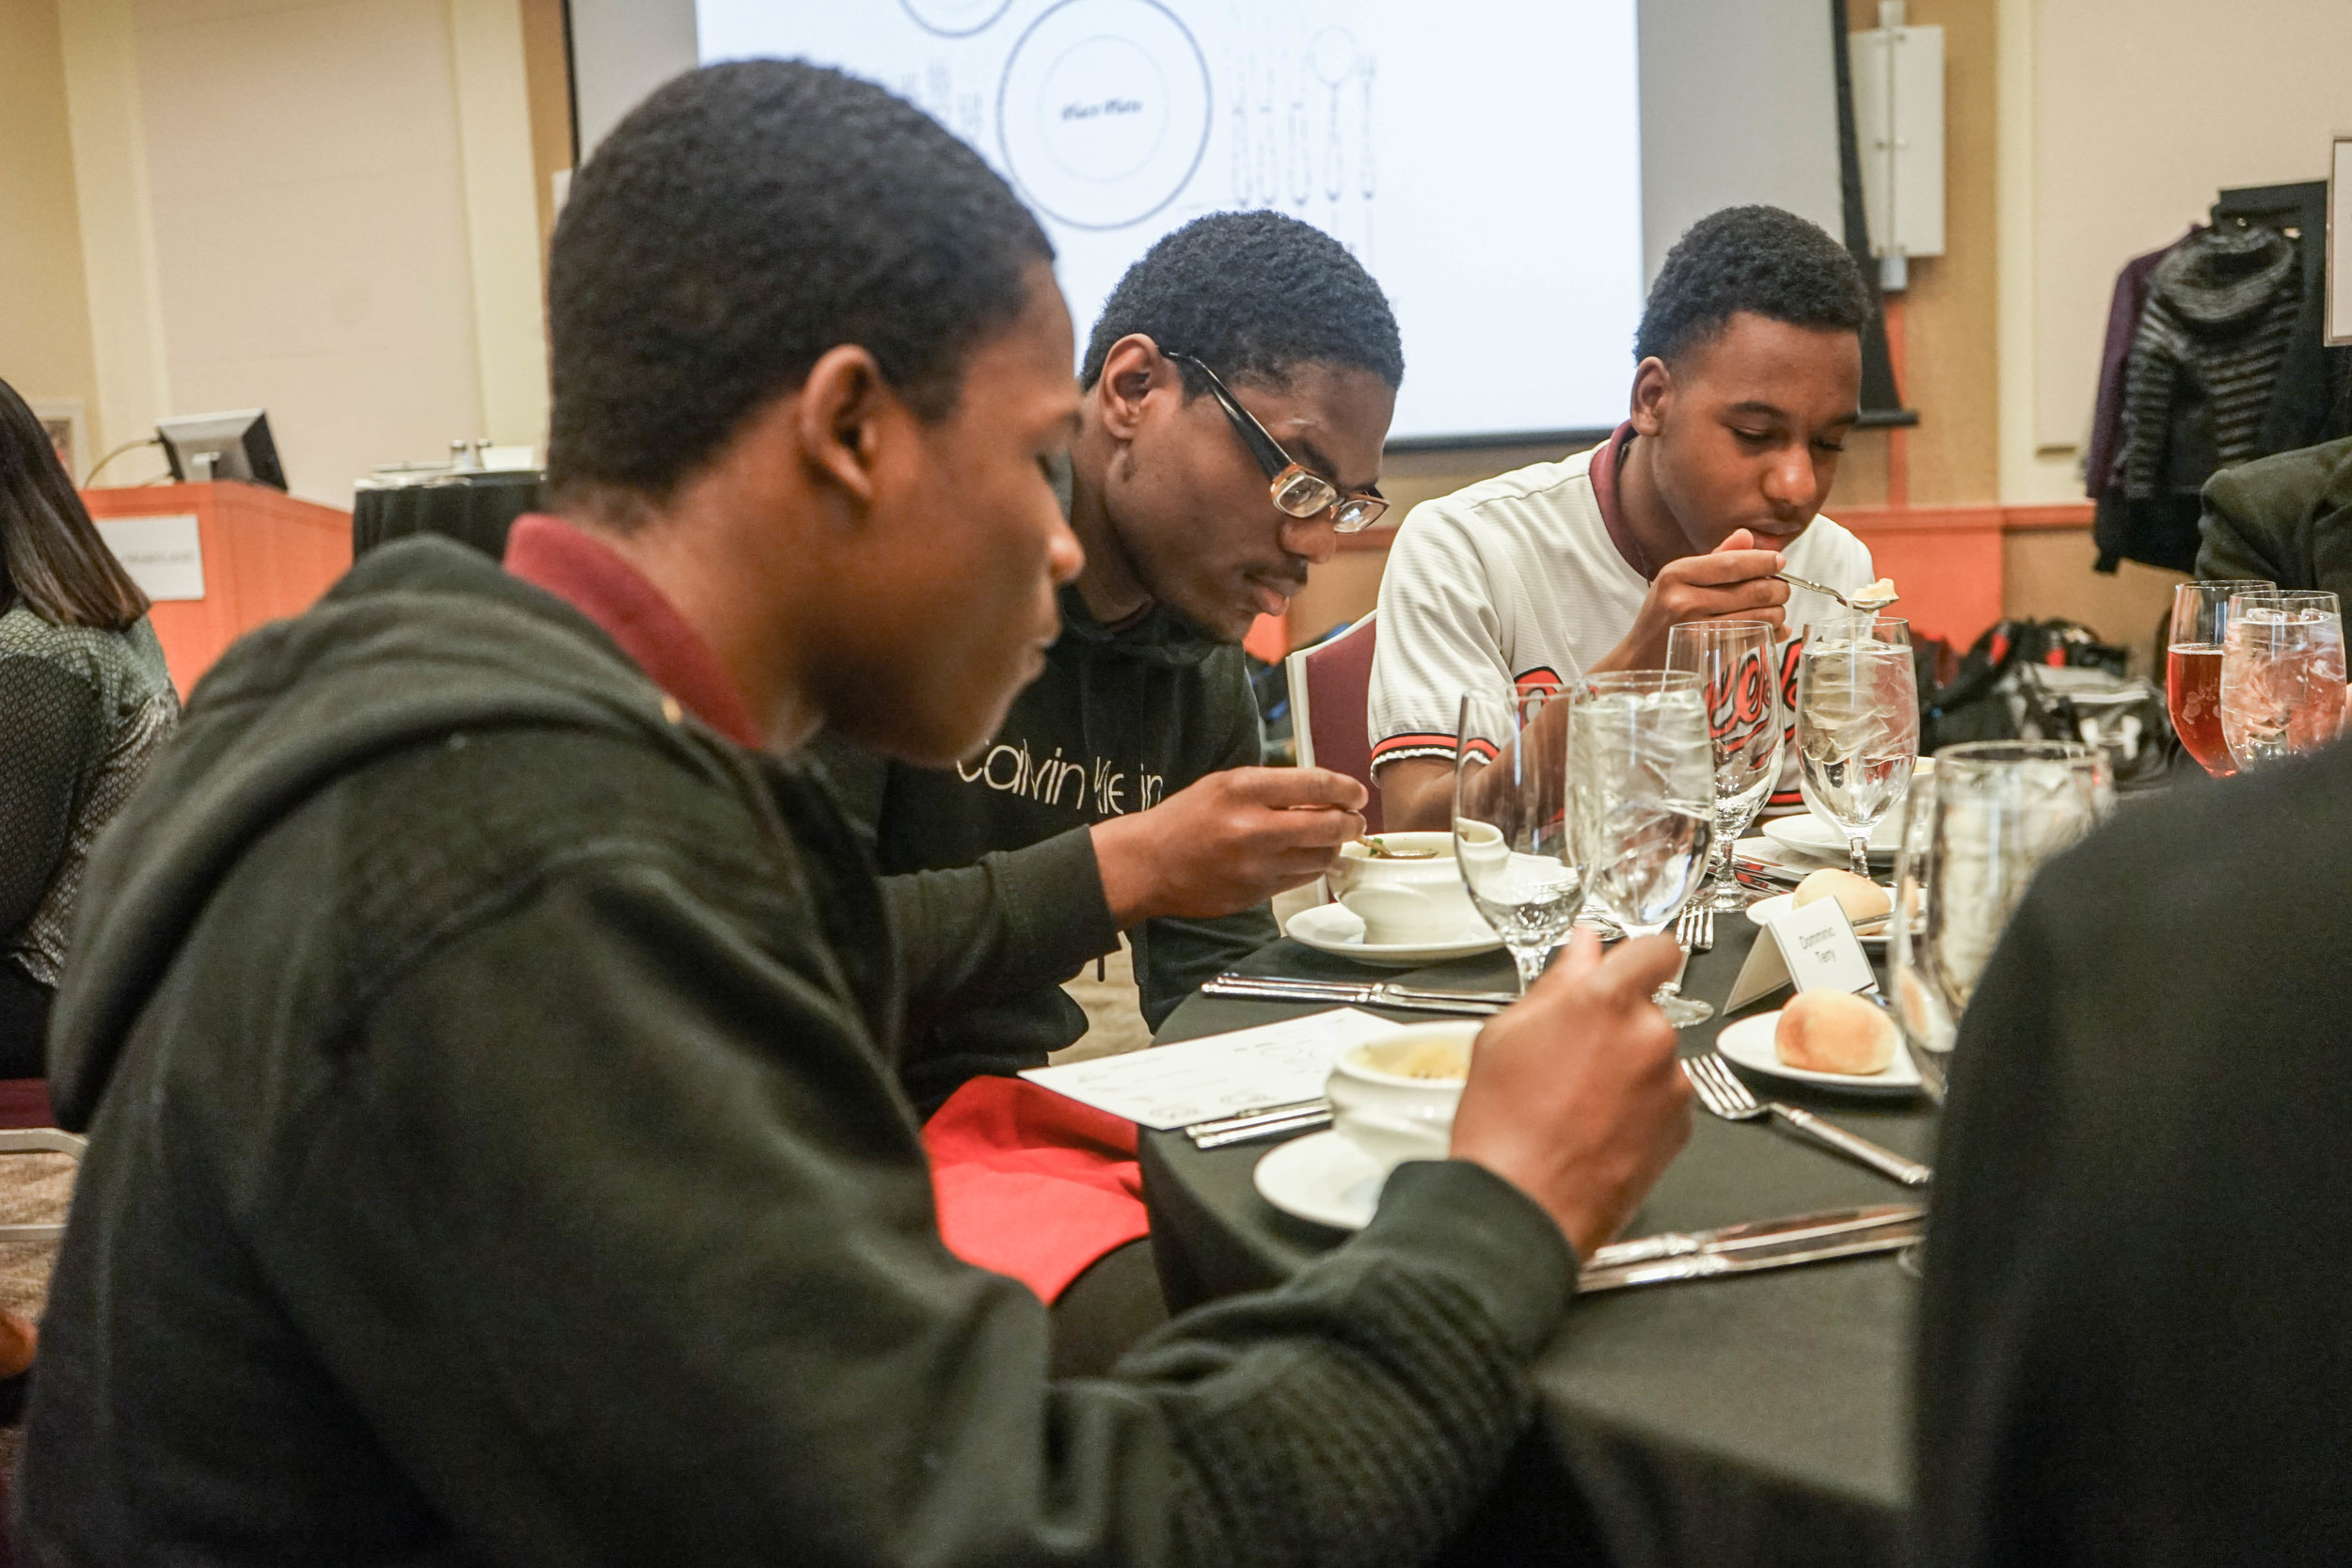 Three students from Renaissance Academy High School cool their soup. French onion soup was the first course of a four-course etiquette dinner at the SMC Campus Center, U of Maryland.